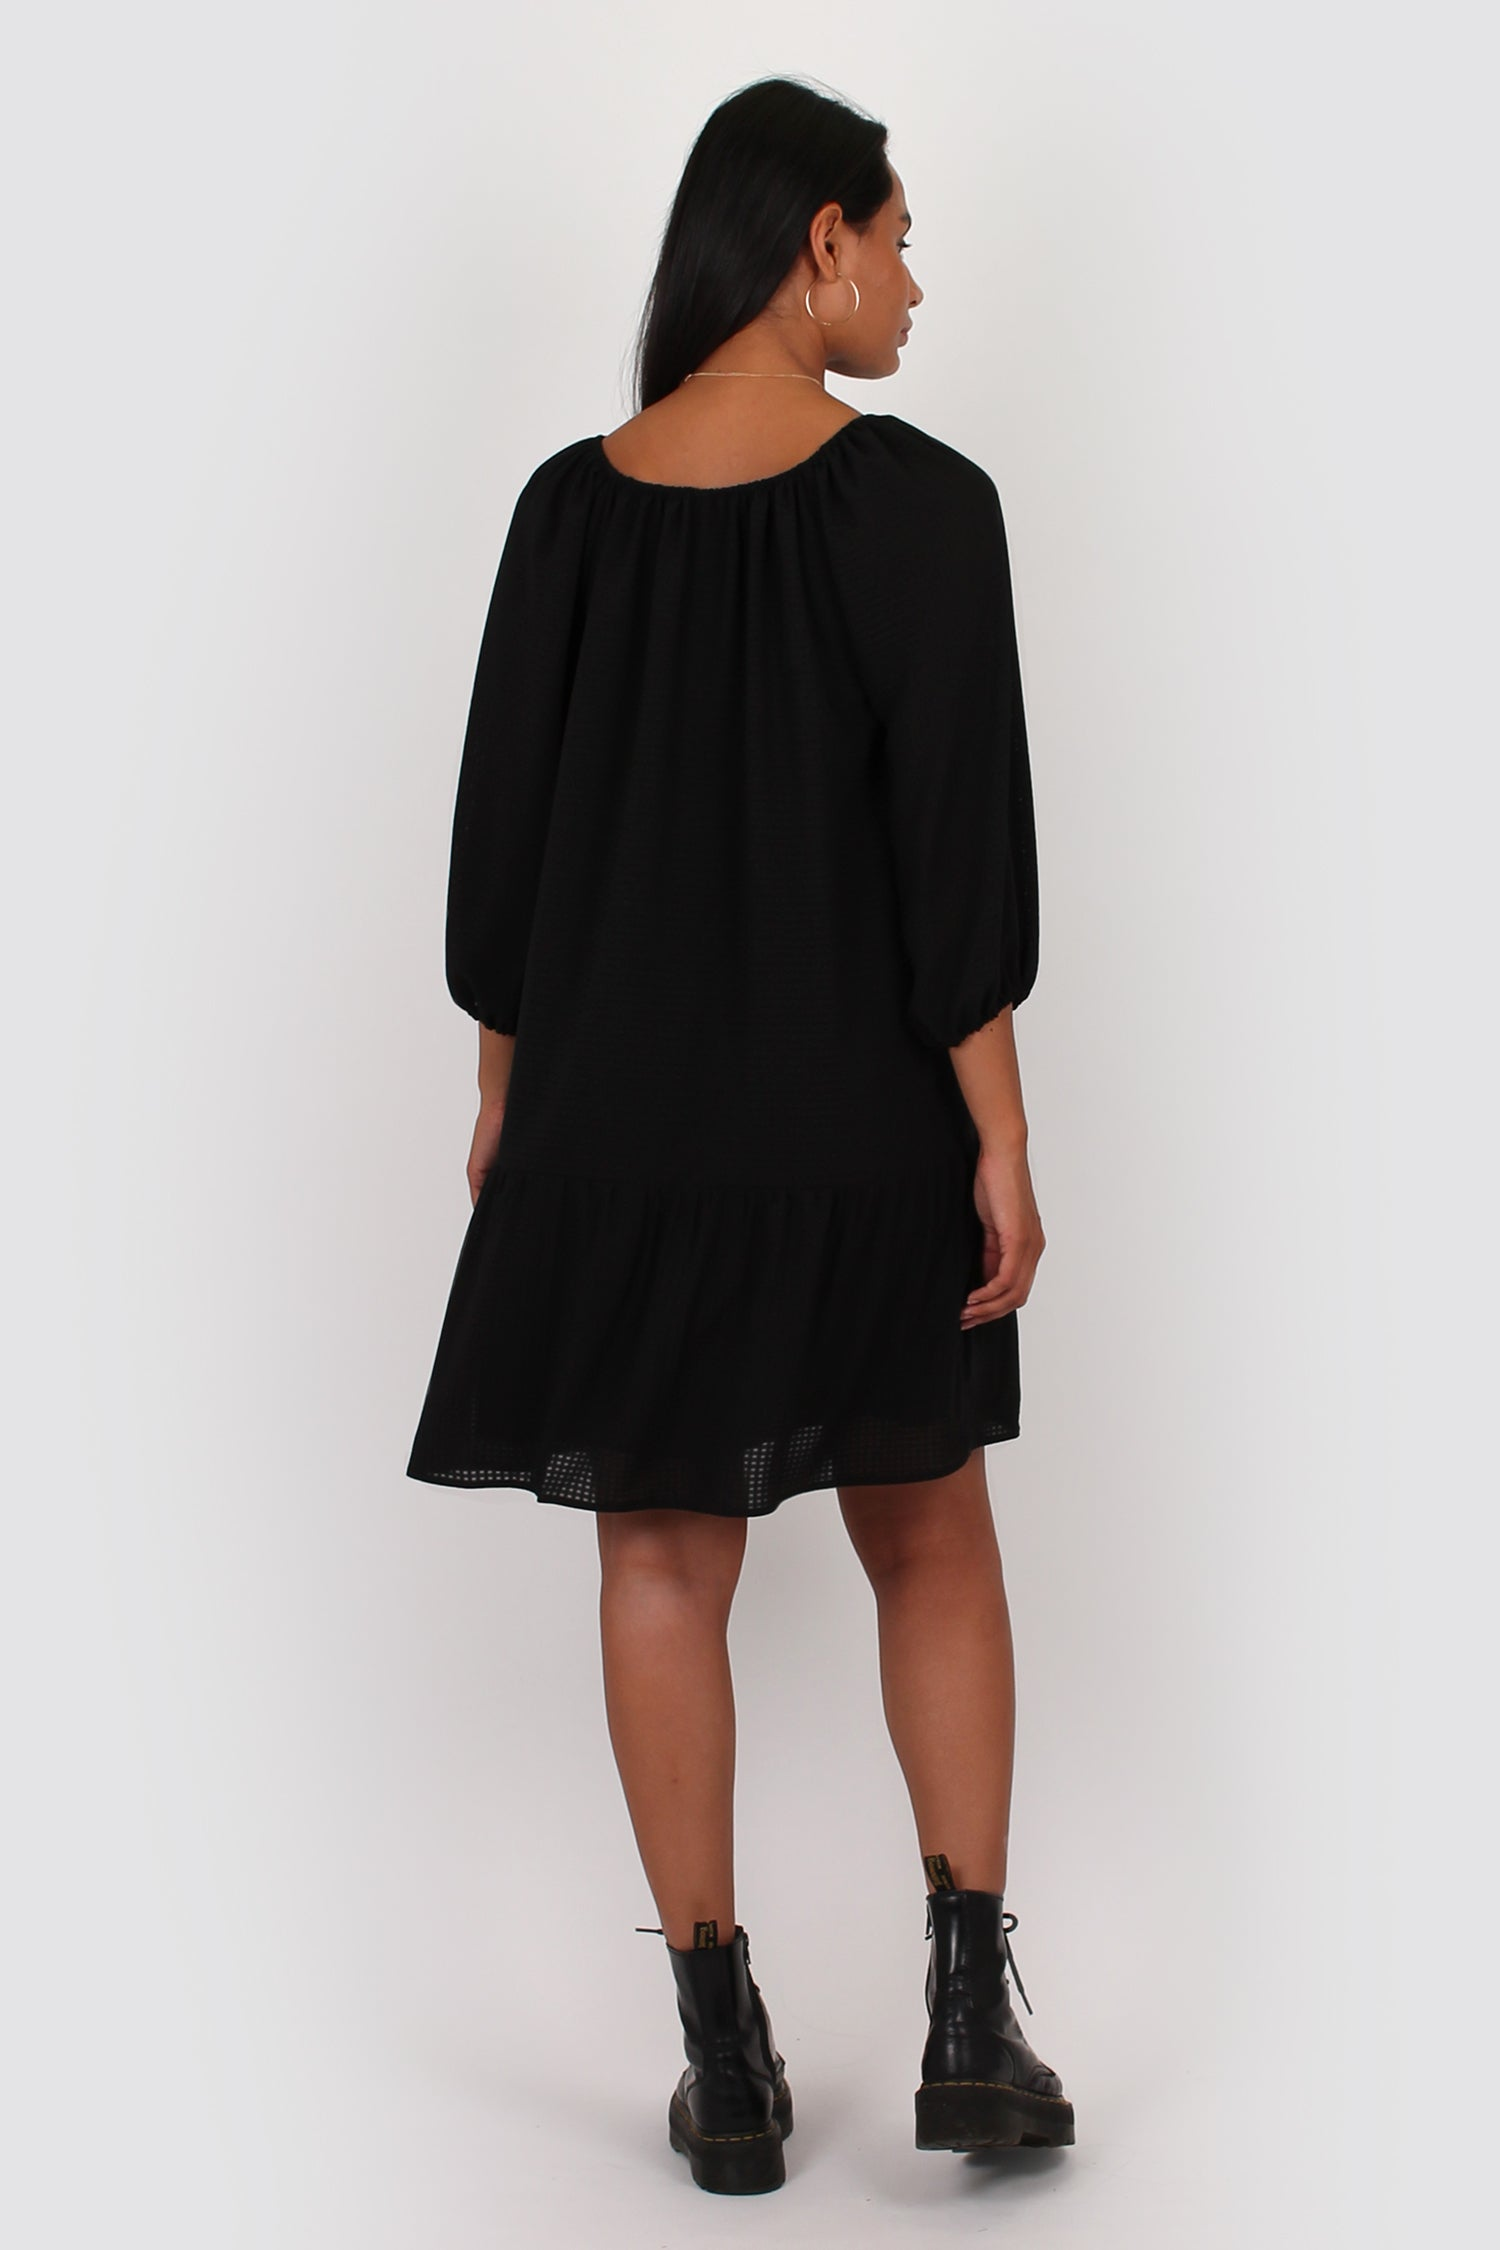 Esme Smock Dress in black